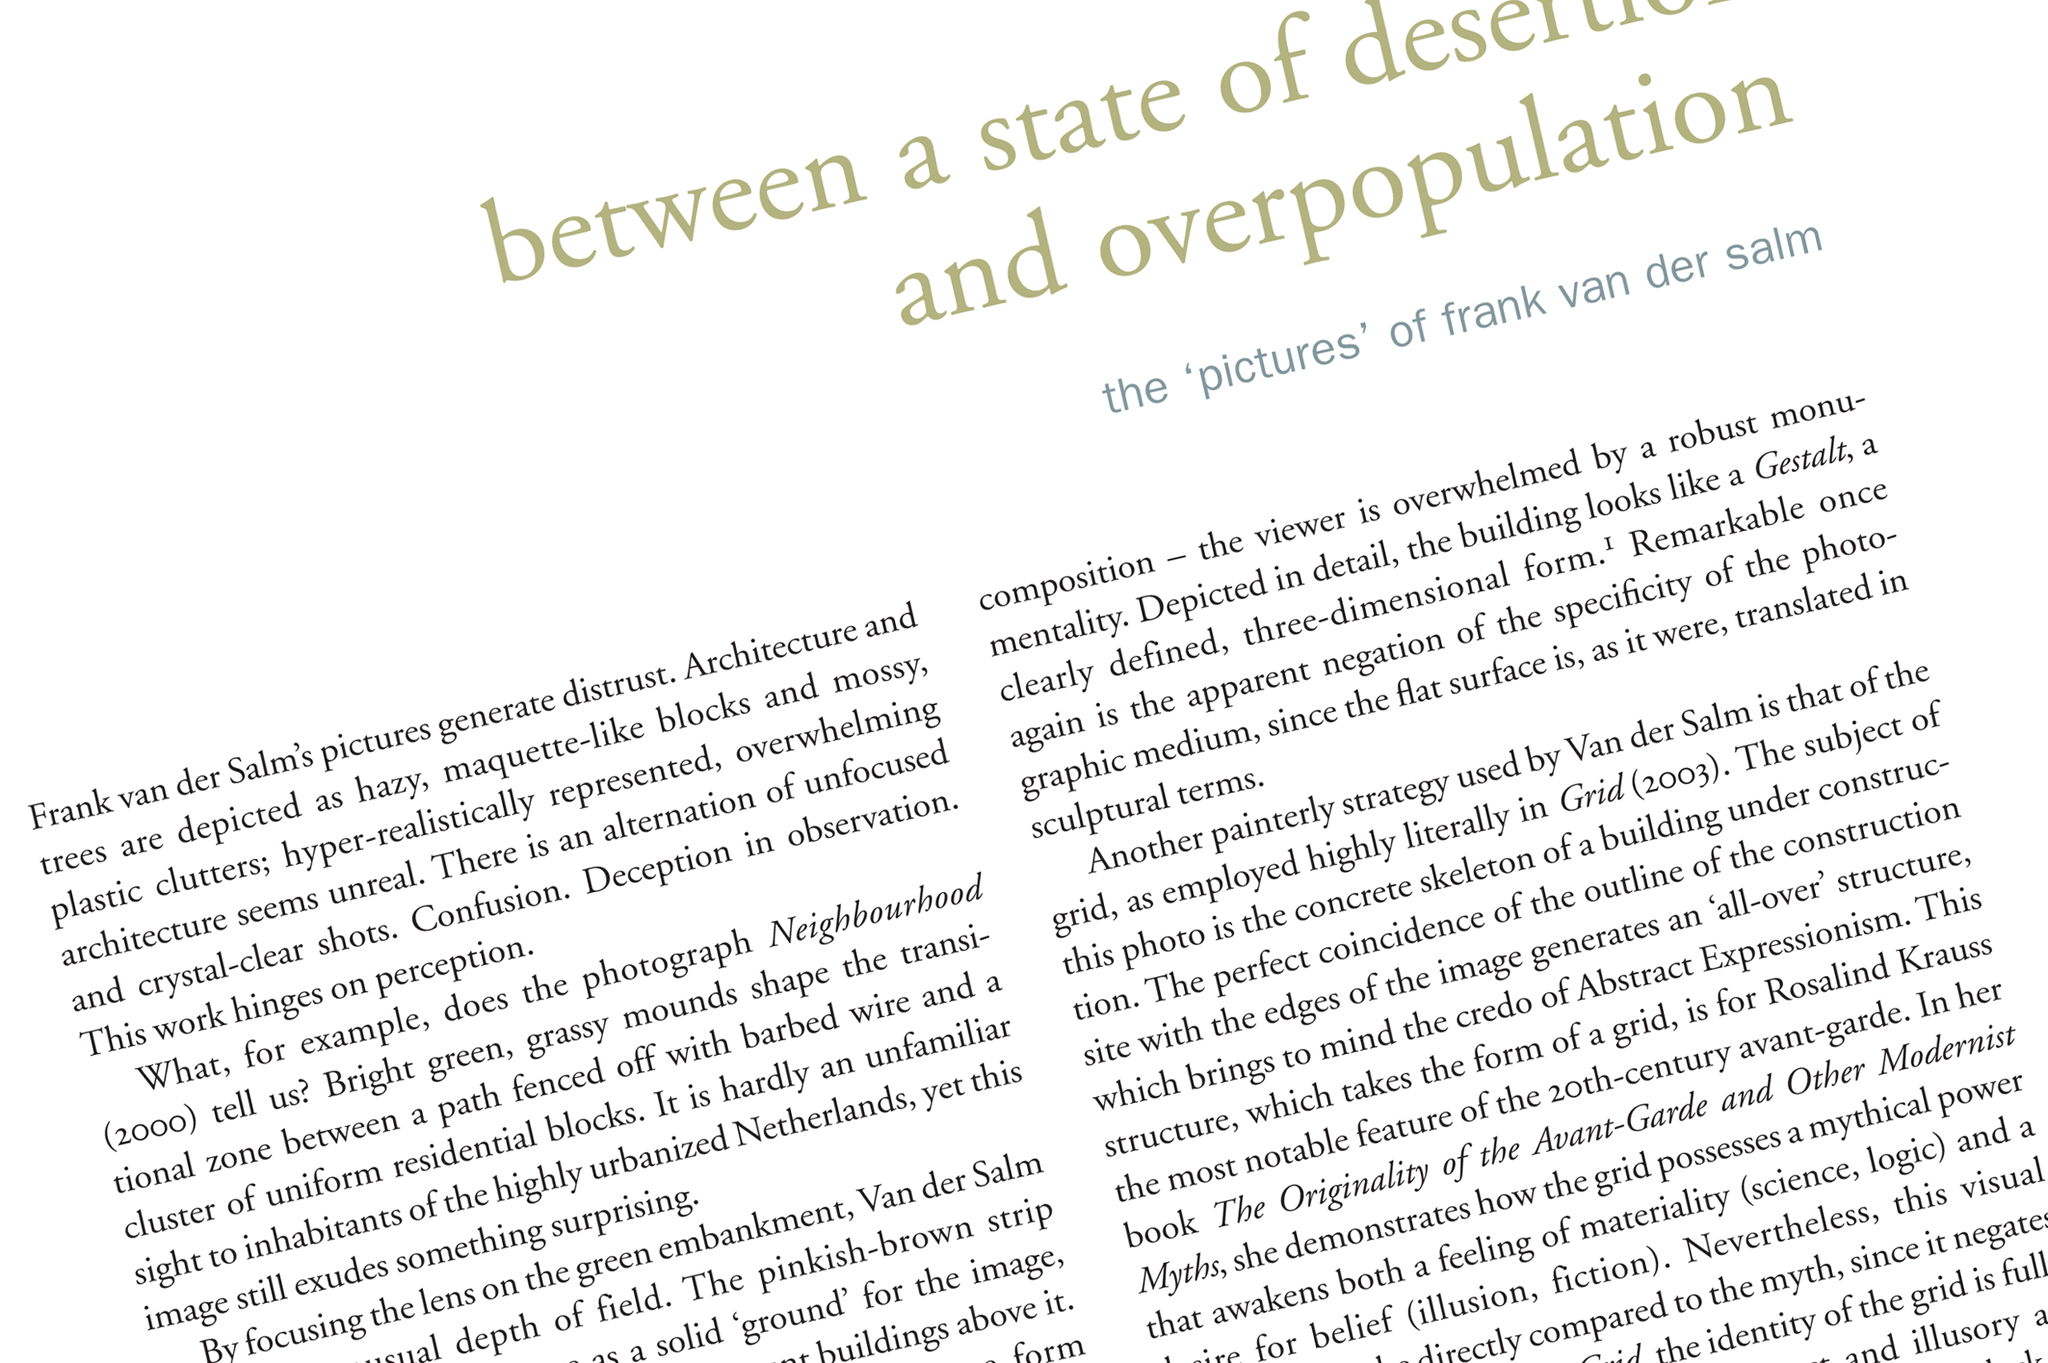 Is overpopulation a global crisis - Essay Example